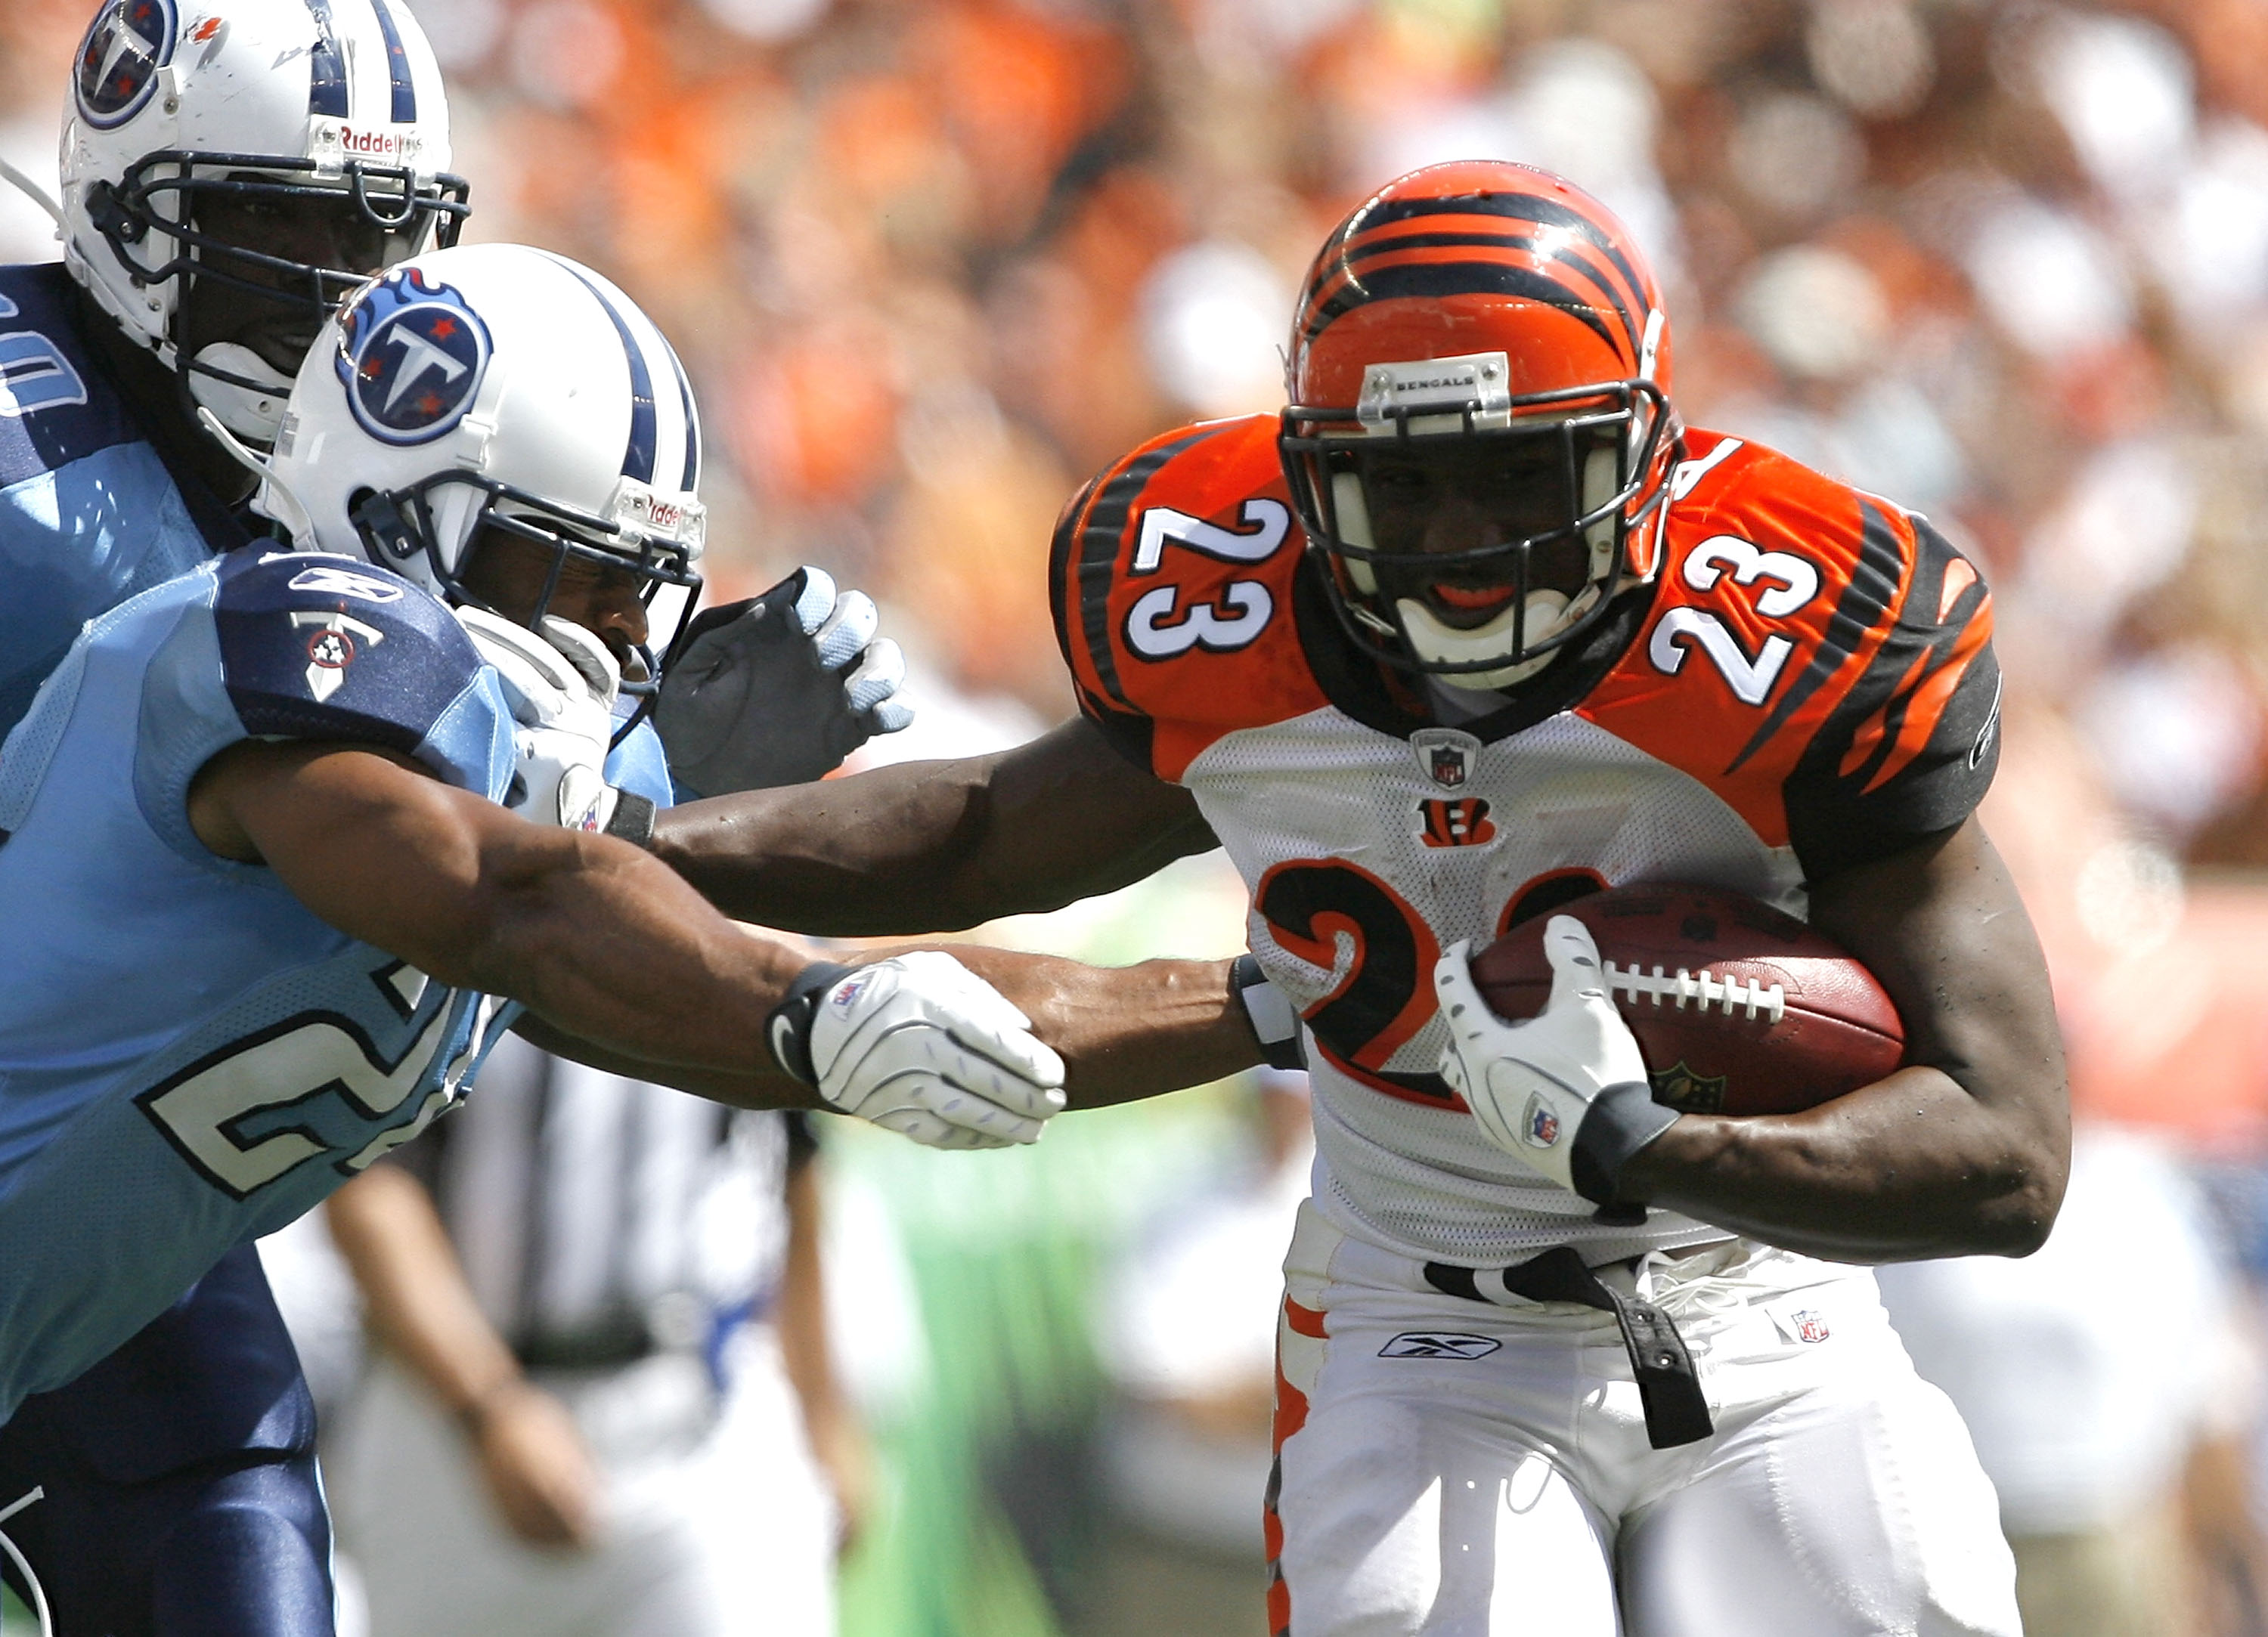 CINCINNATI - SEPTEMBER 14: Chris Perry #23 of the Cincinnati Bengals runs by Chris Hope #24 of the Tennessee Titans during the second quarter of their NFL game September 14, 2008 at Paul Brown Stadium in Cincinnati, Ohio. The Titans defeated the Bengals 2